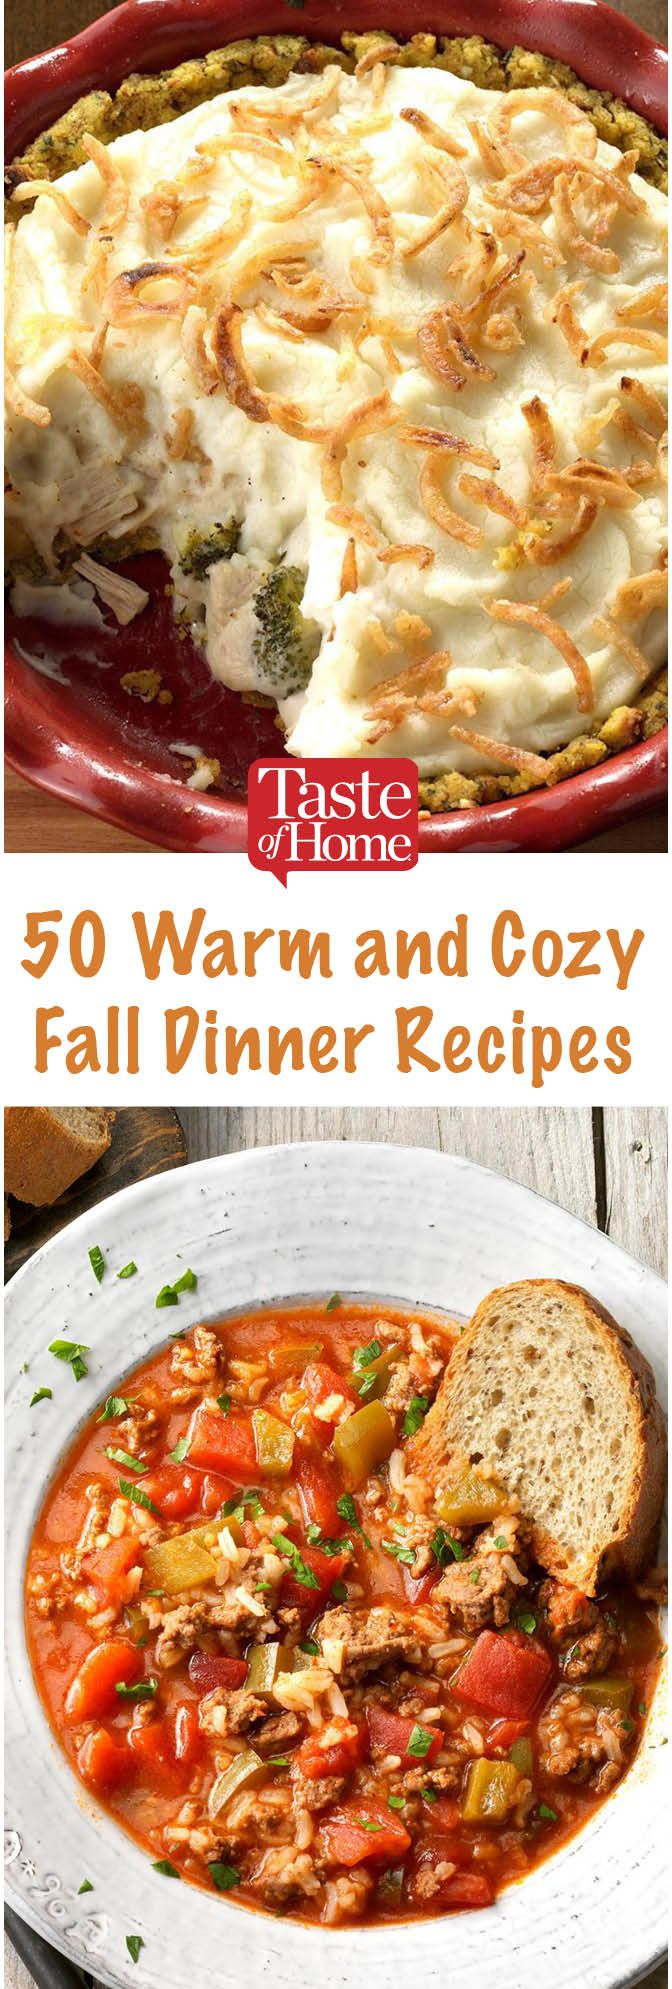 50 Warm and Cozy Fall Dinner Recipes